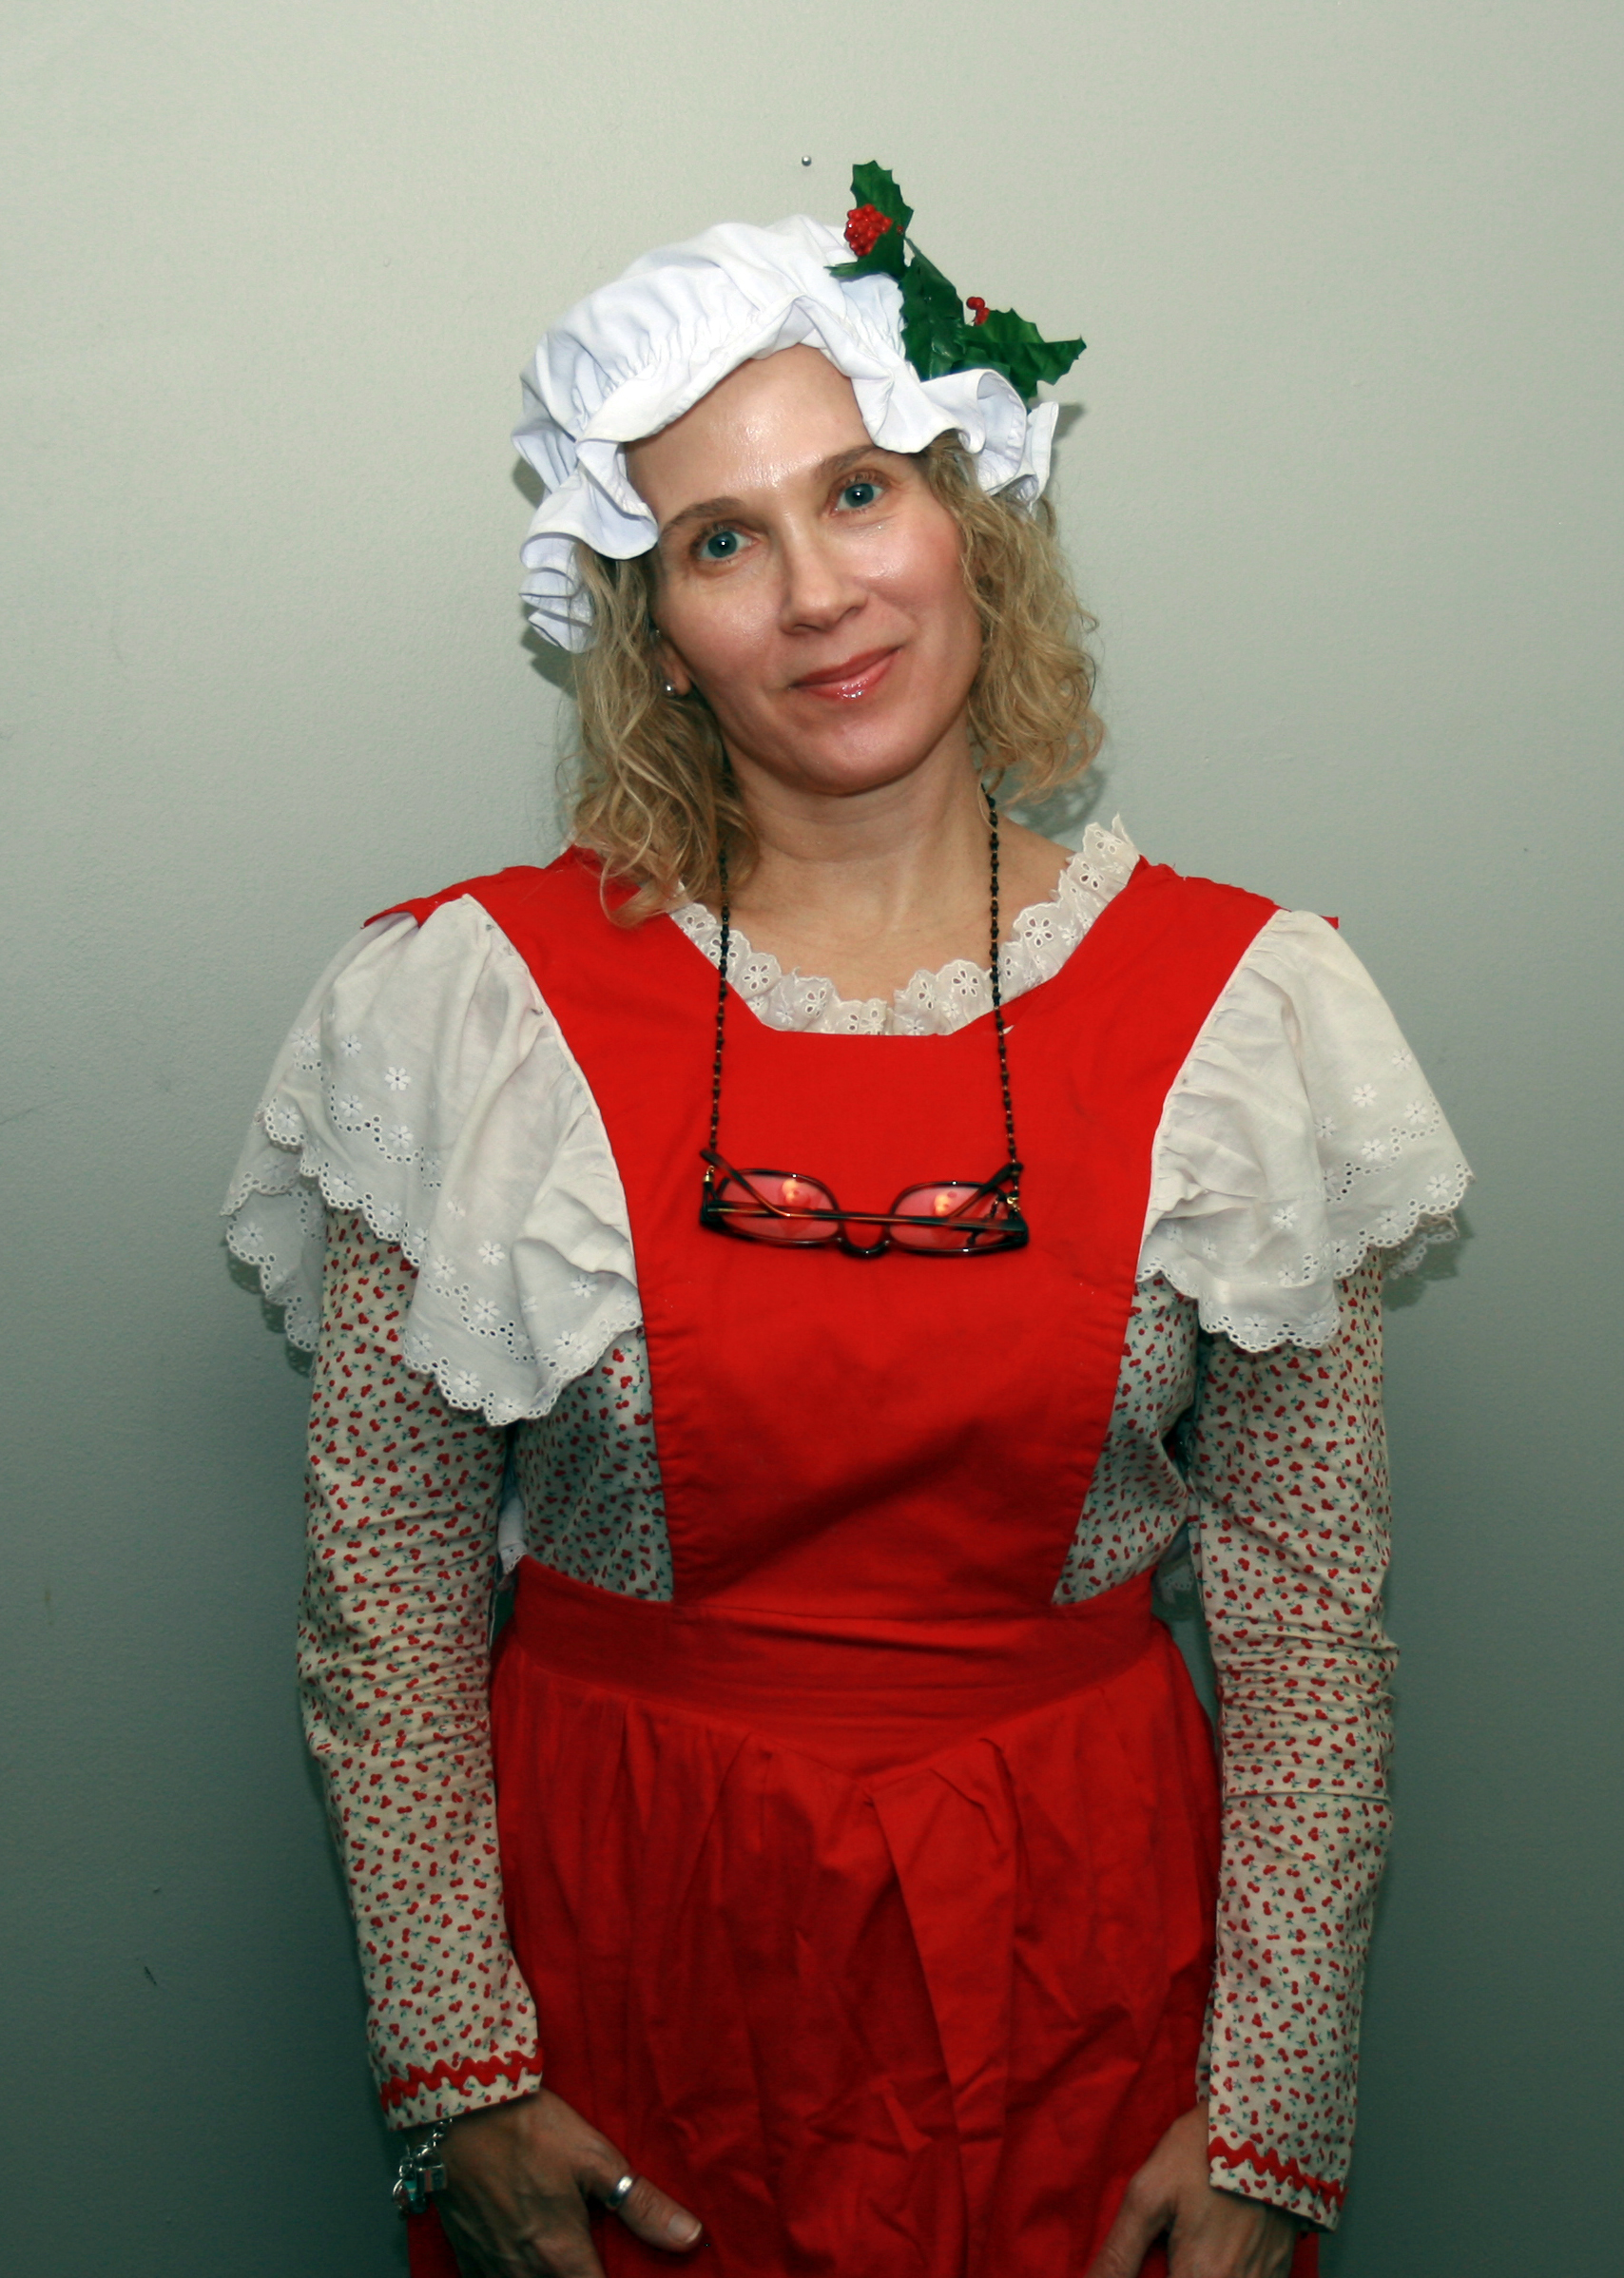 Melody Meadows as Mrs. Claus